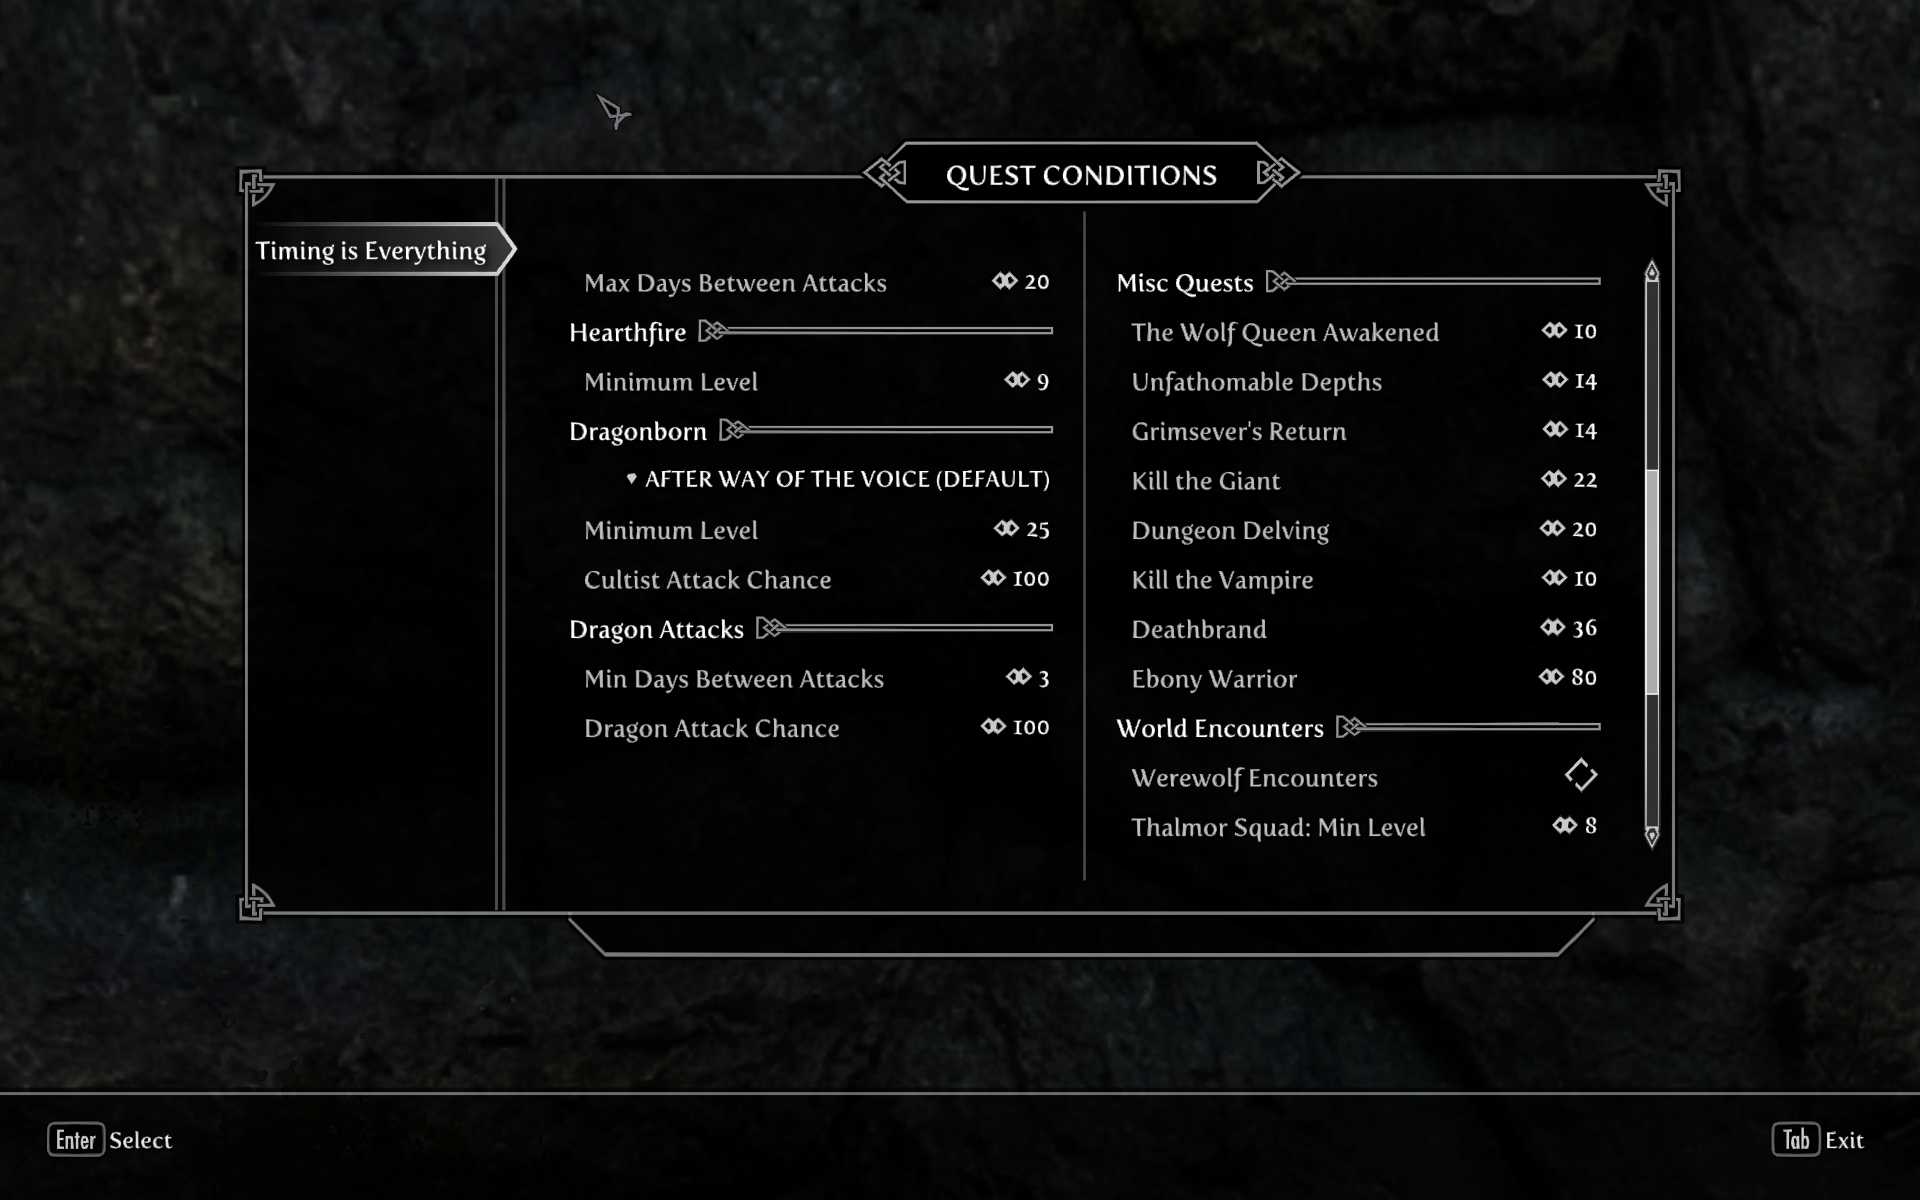 Quest Conditions 2